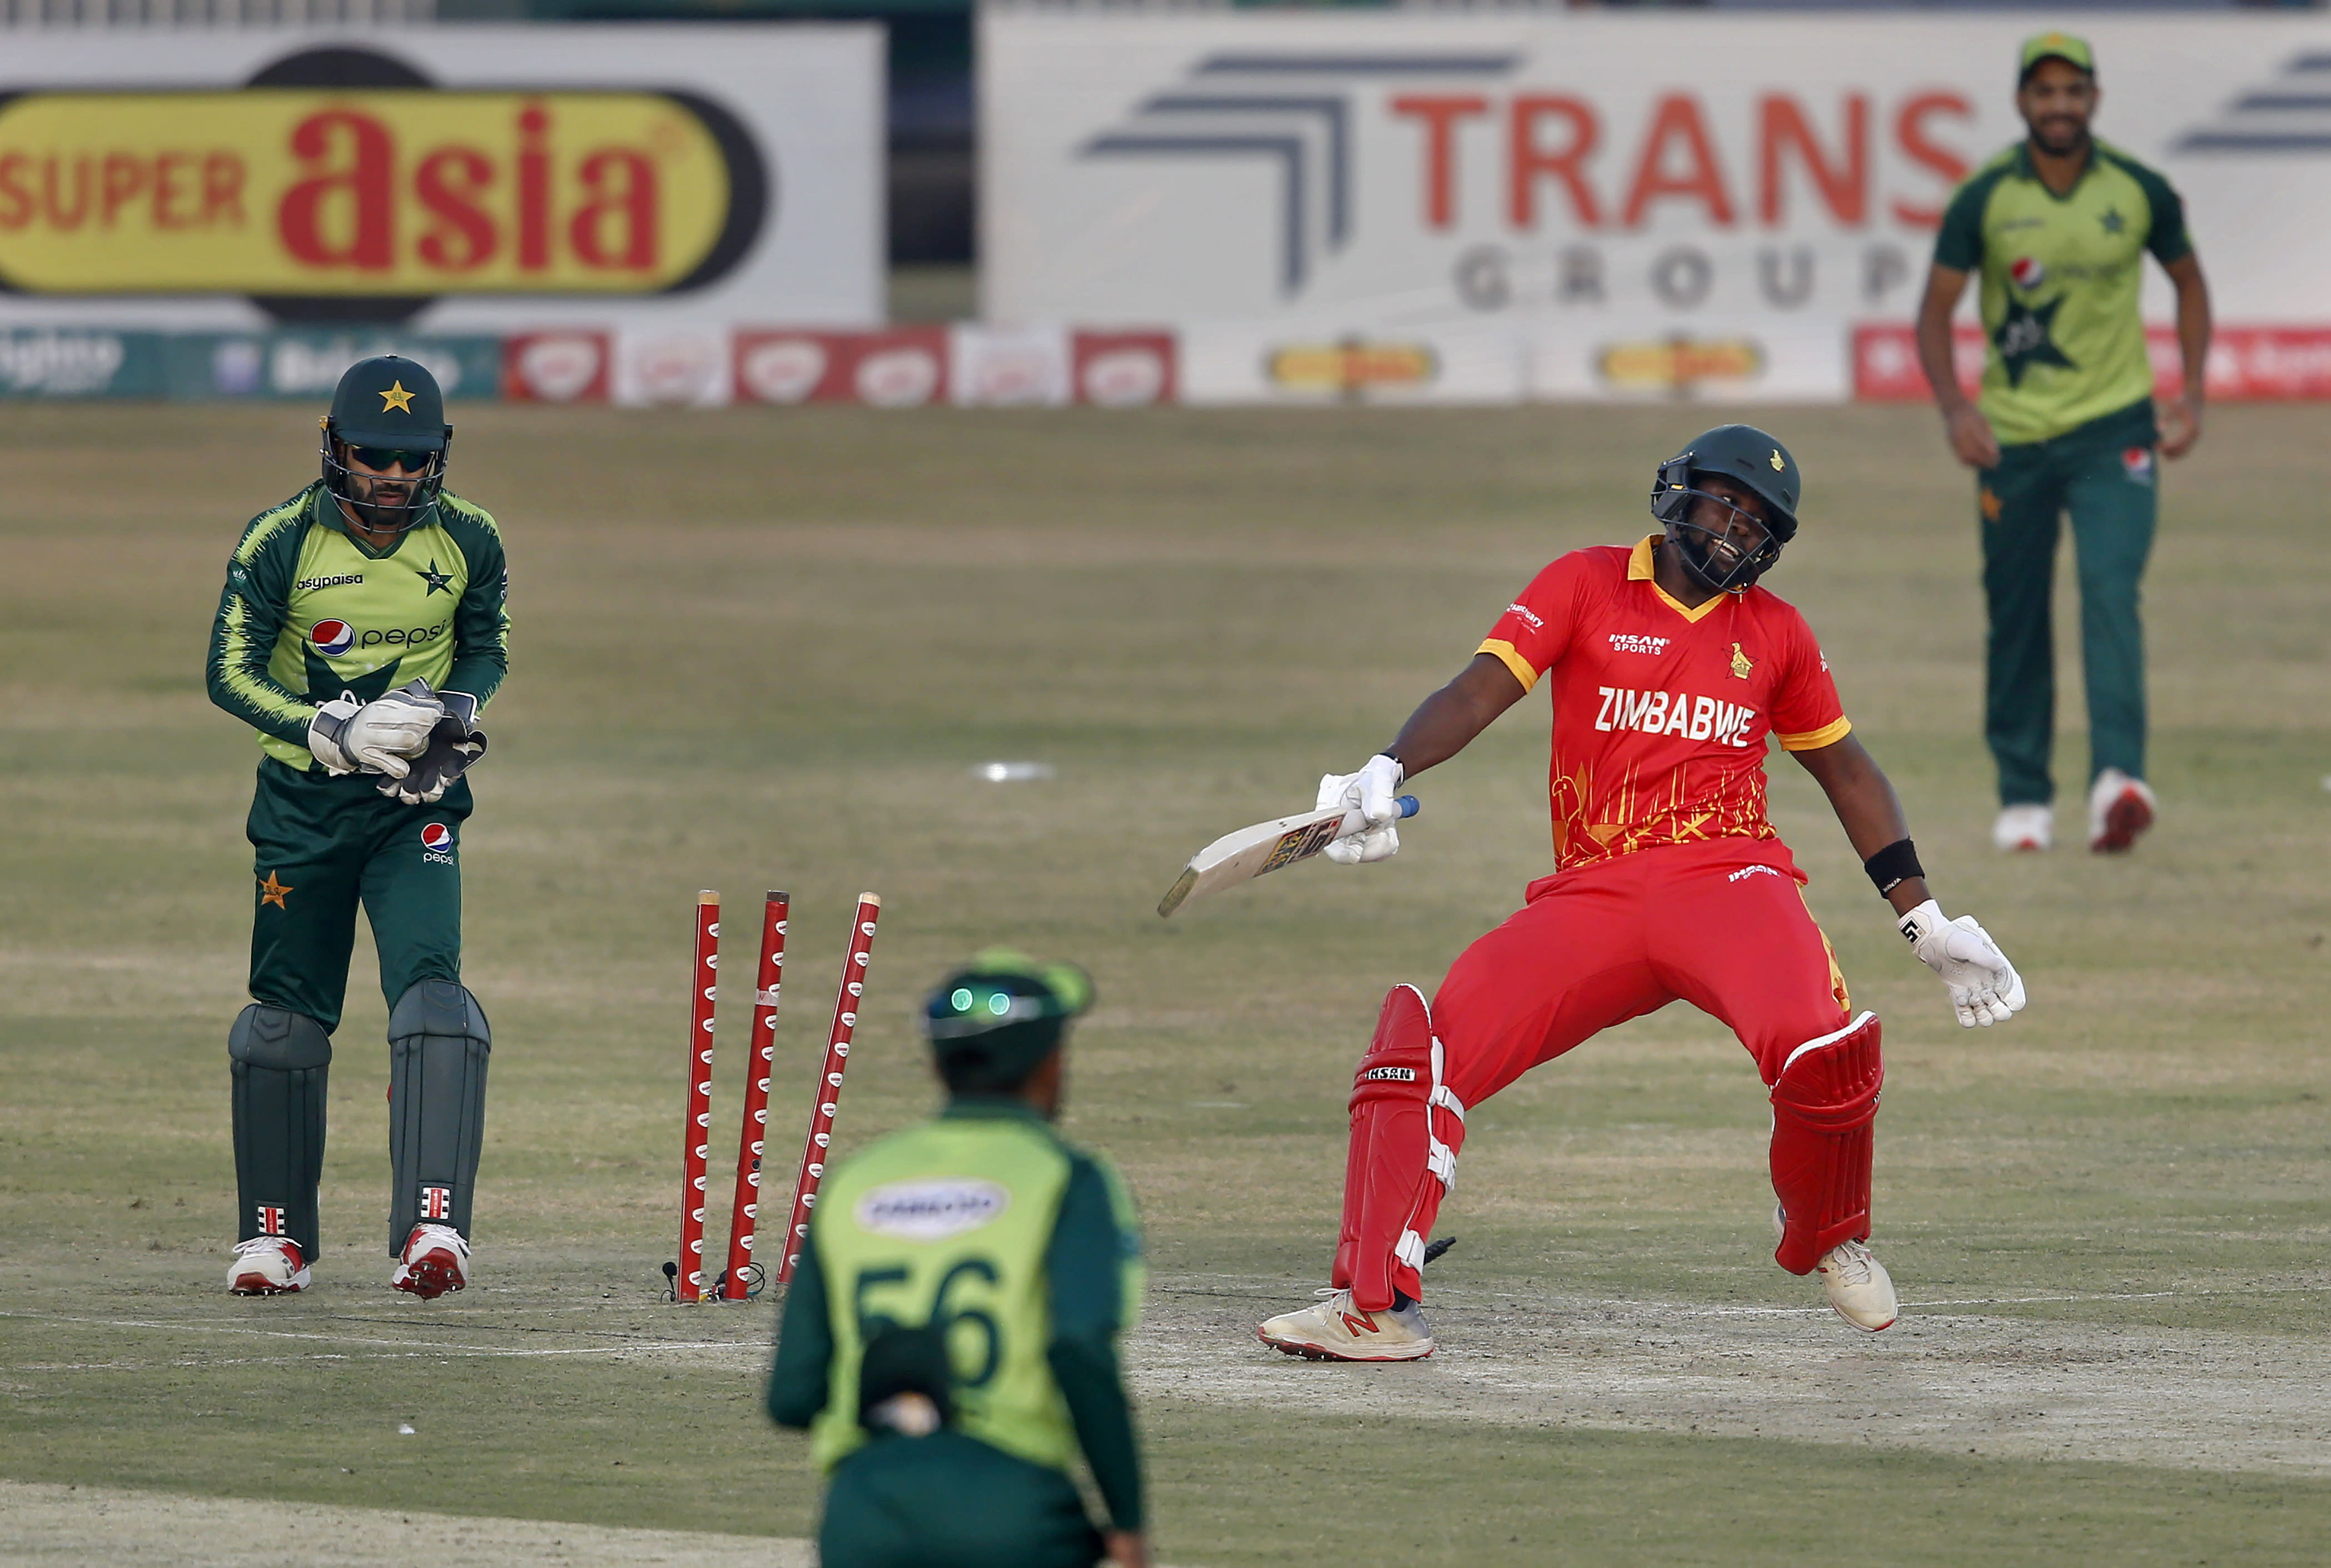 Ali, Qadir lift Pakistan to another big win over Zimbabwe